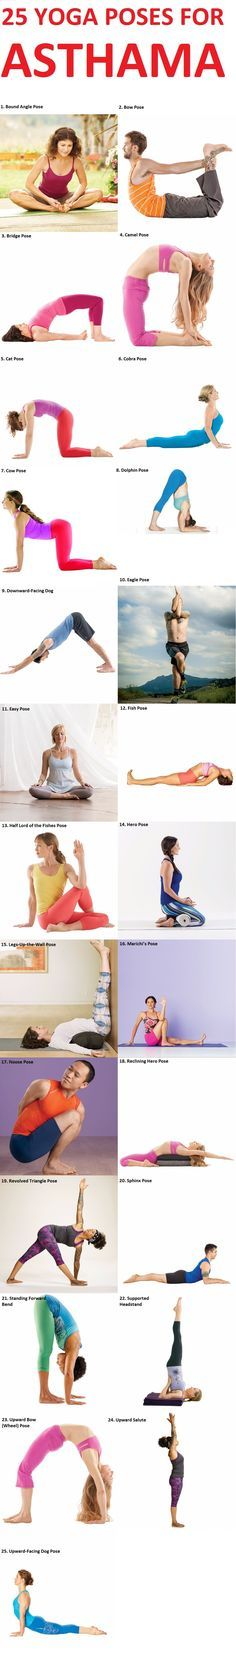 Yoga Poses to Treat Asthama